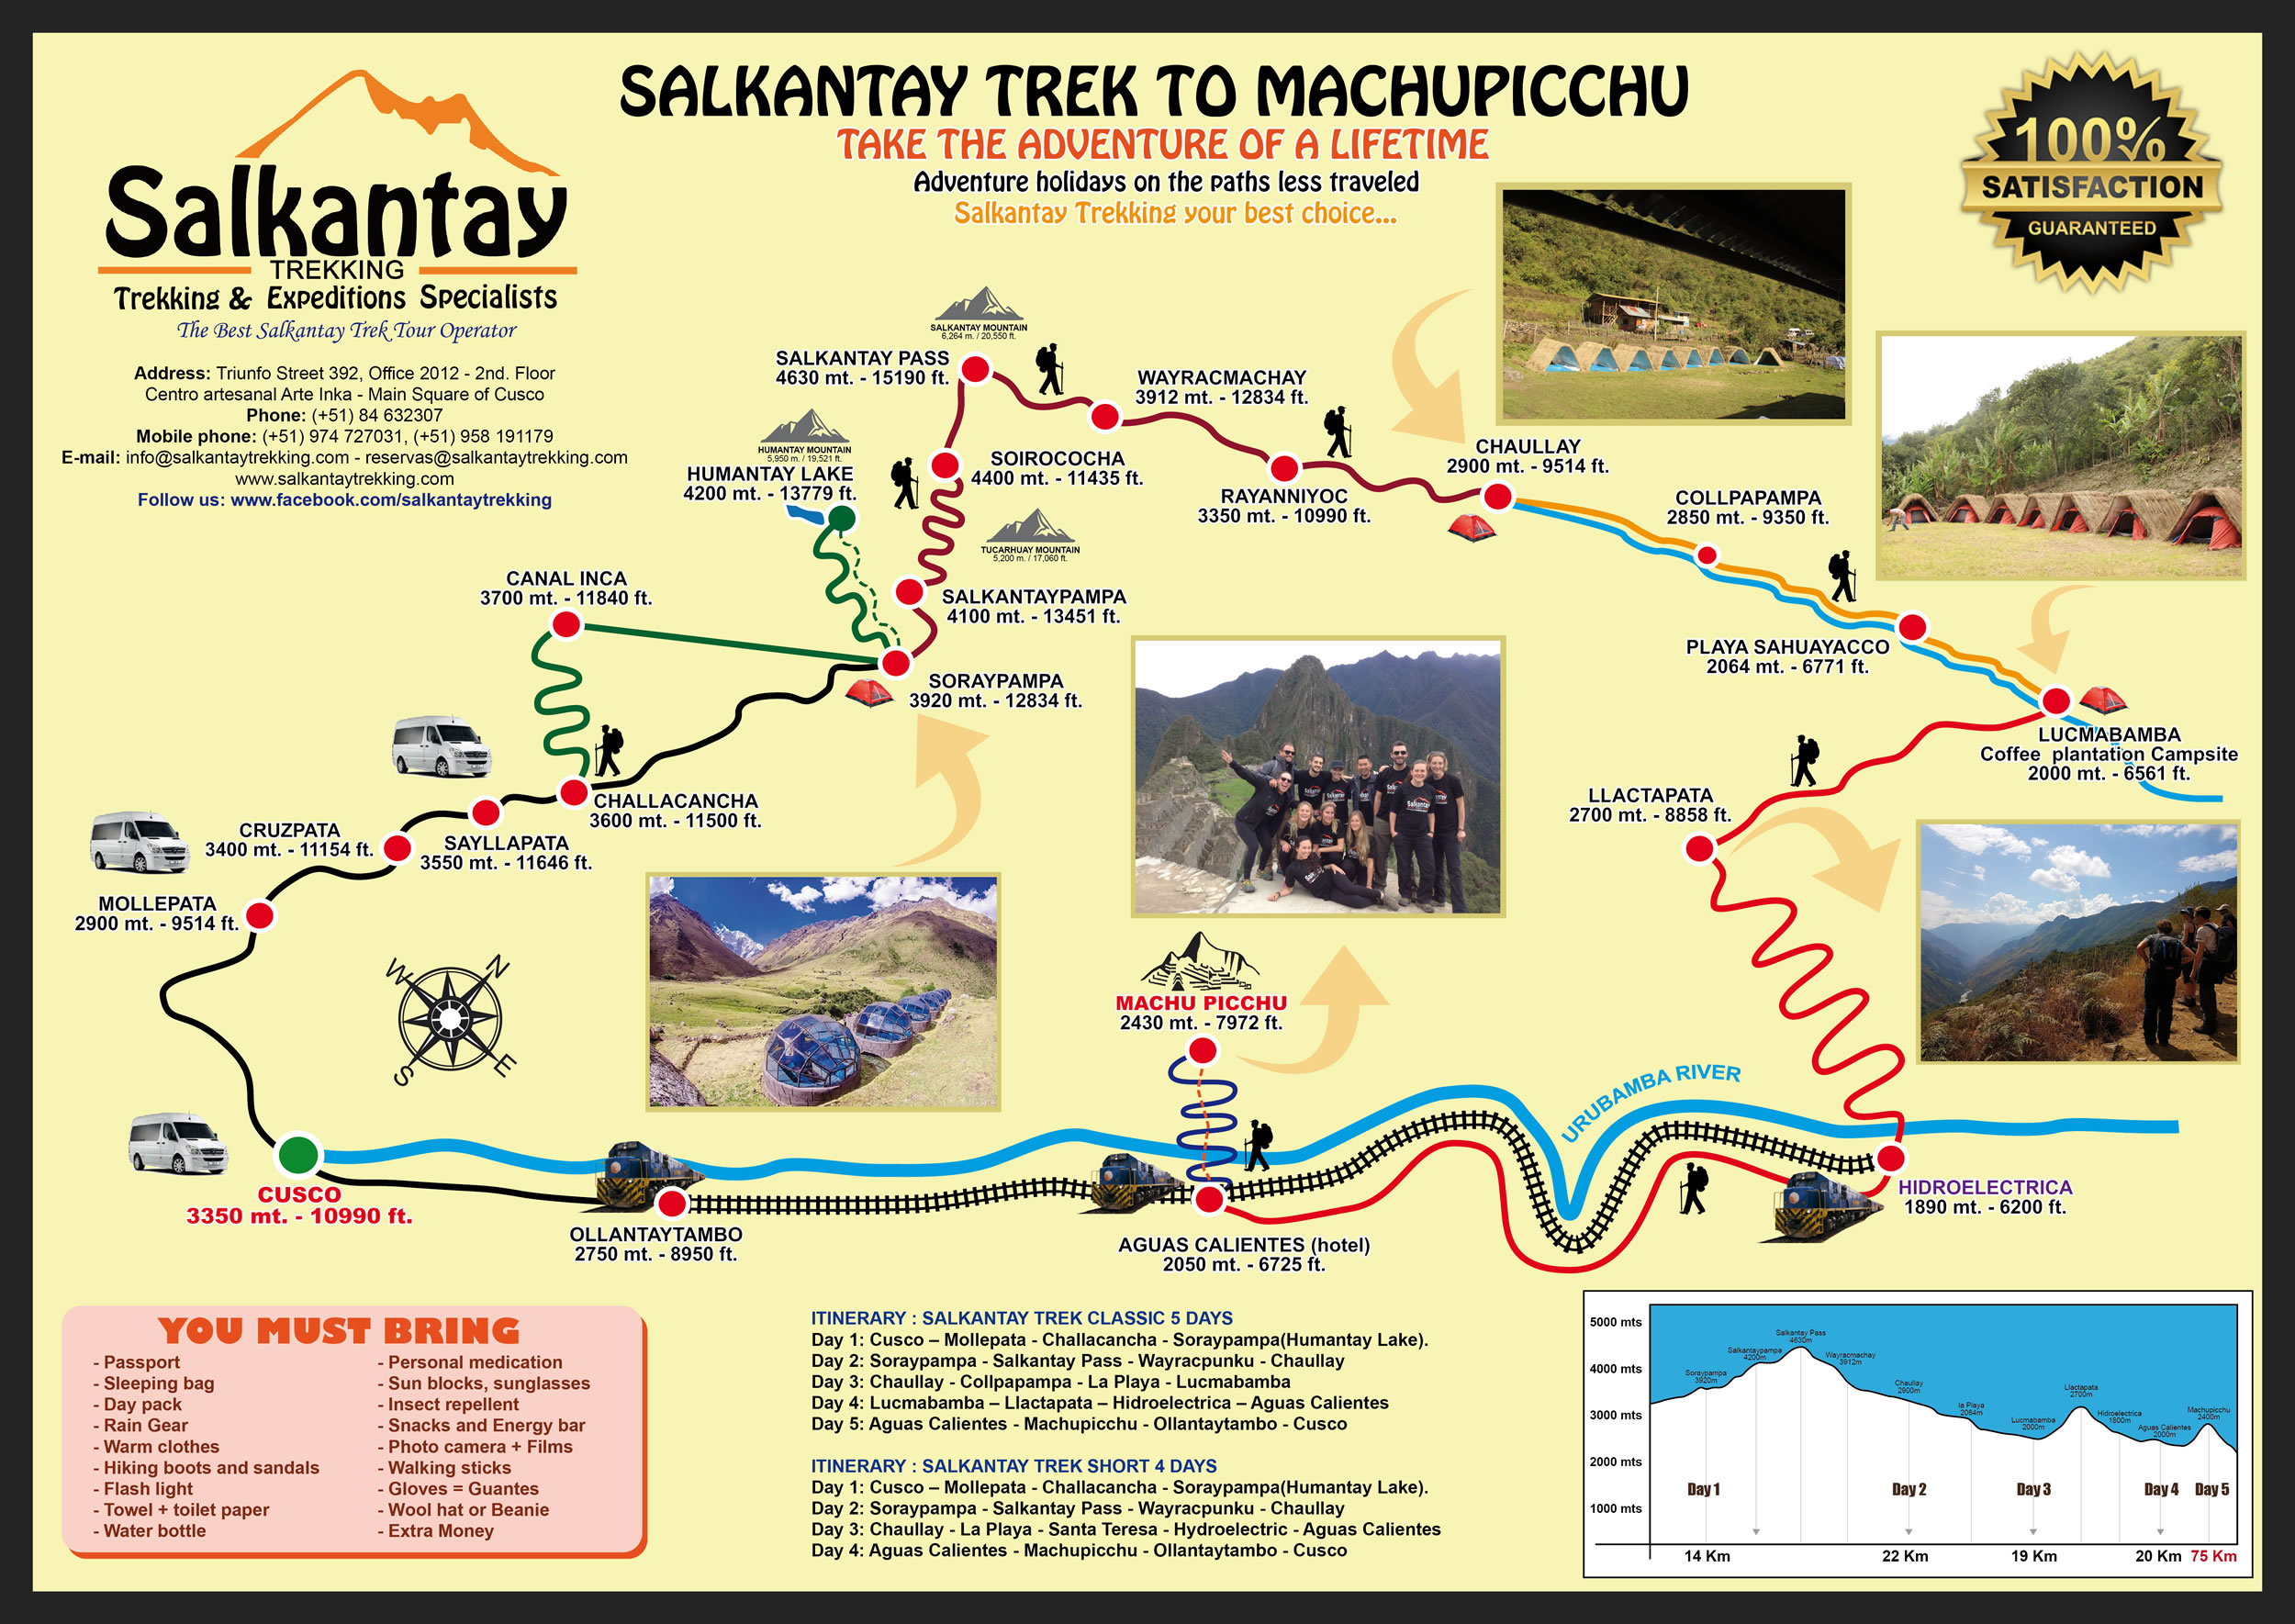 Salkantay Trek map and Itinerary